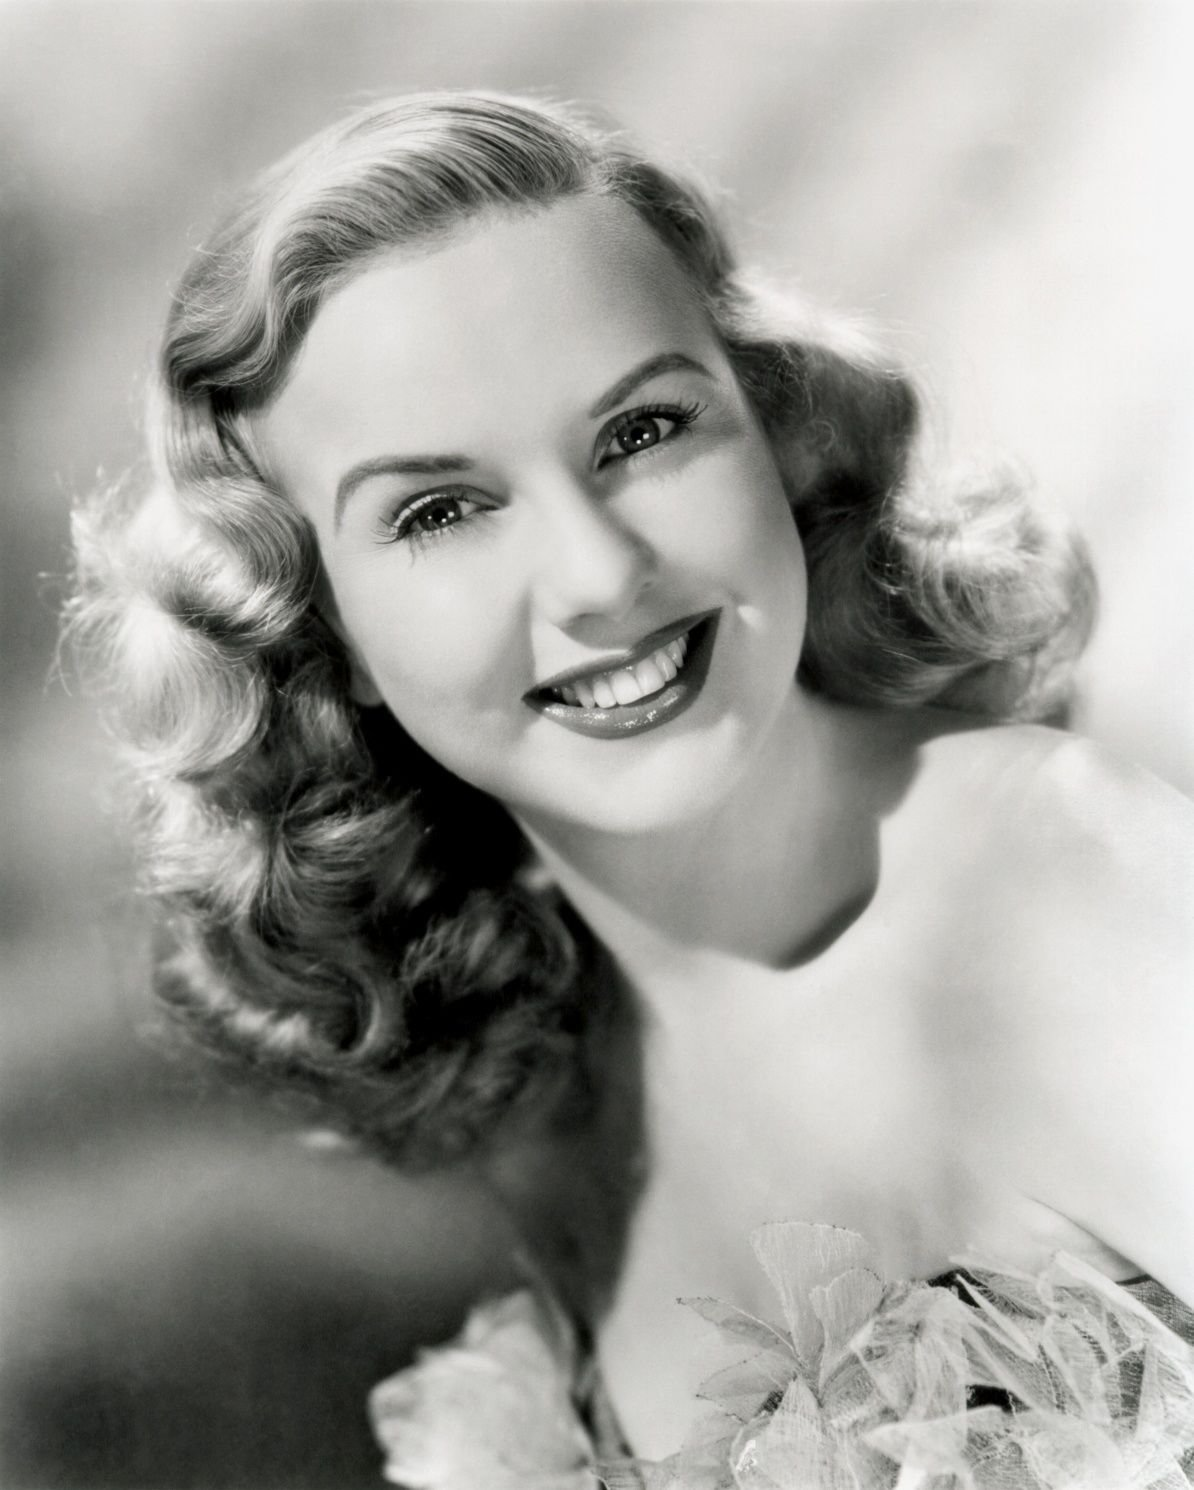 The Best 30 S Long Hair Option 1930 S Pinterest Pictures